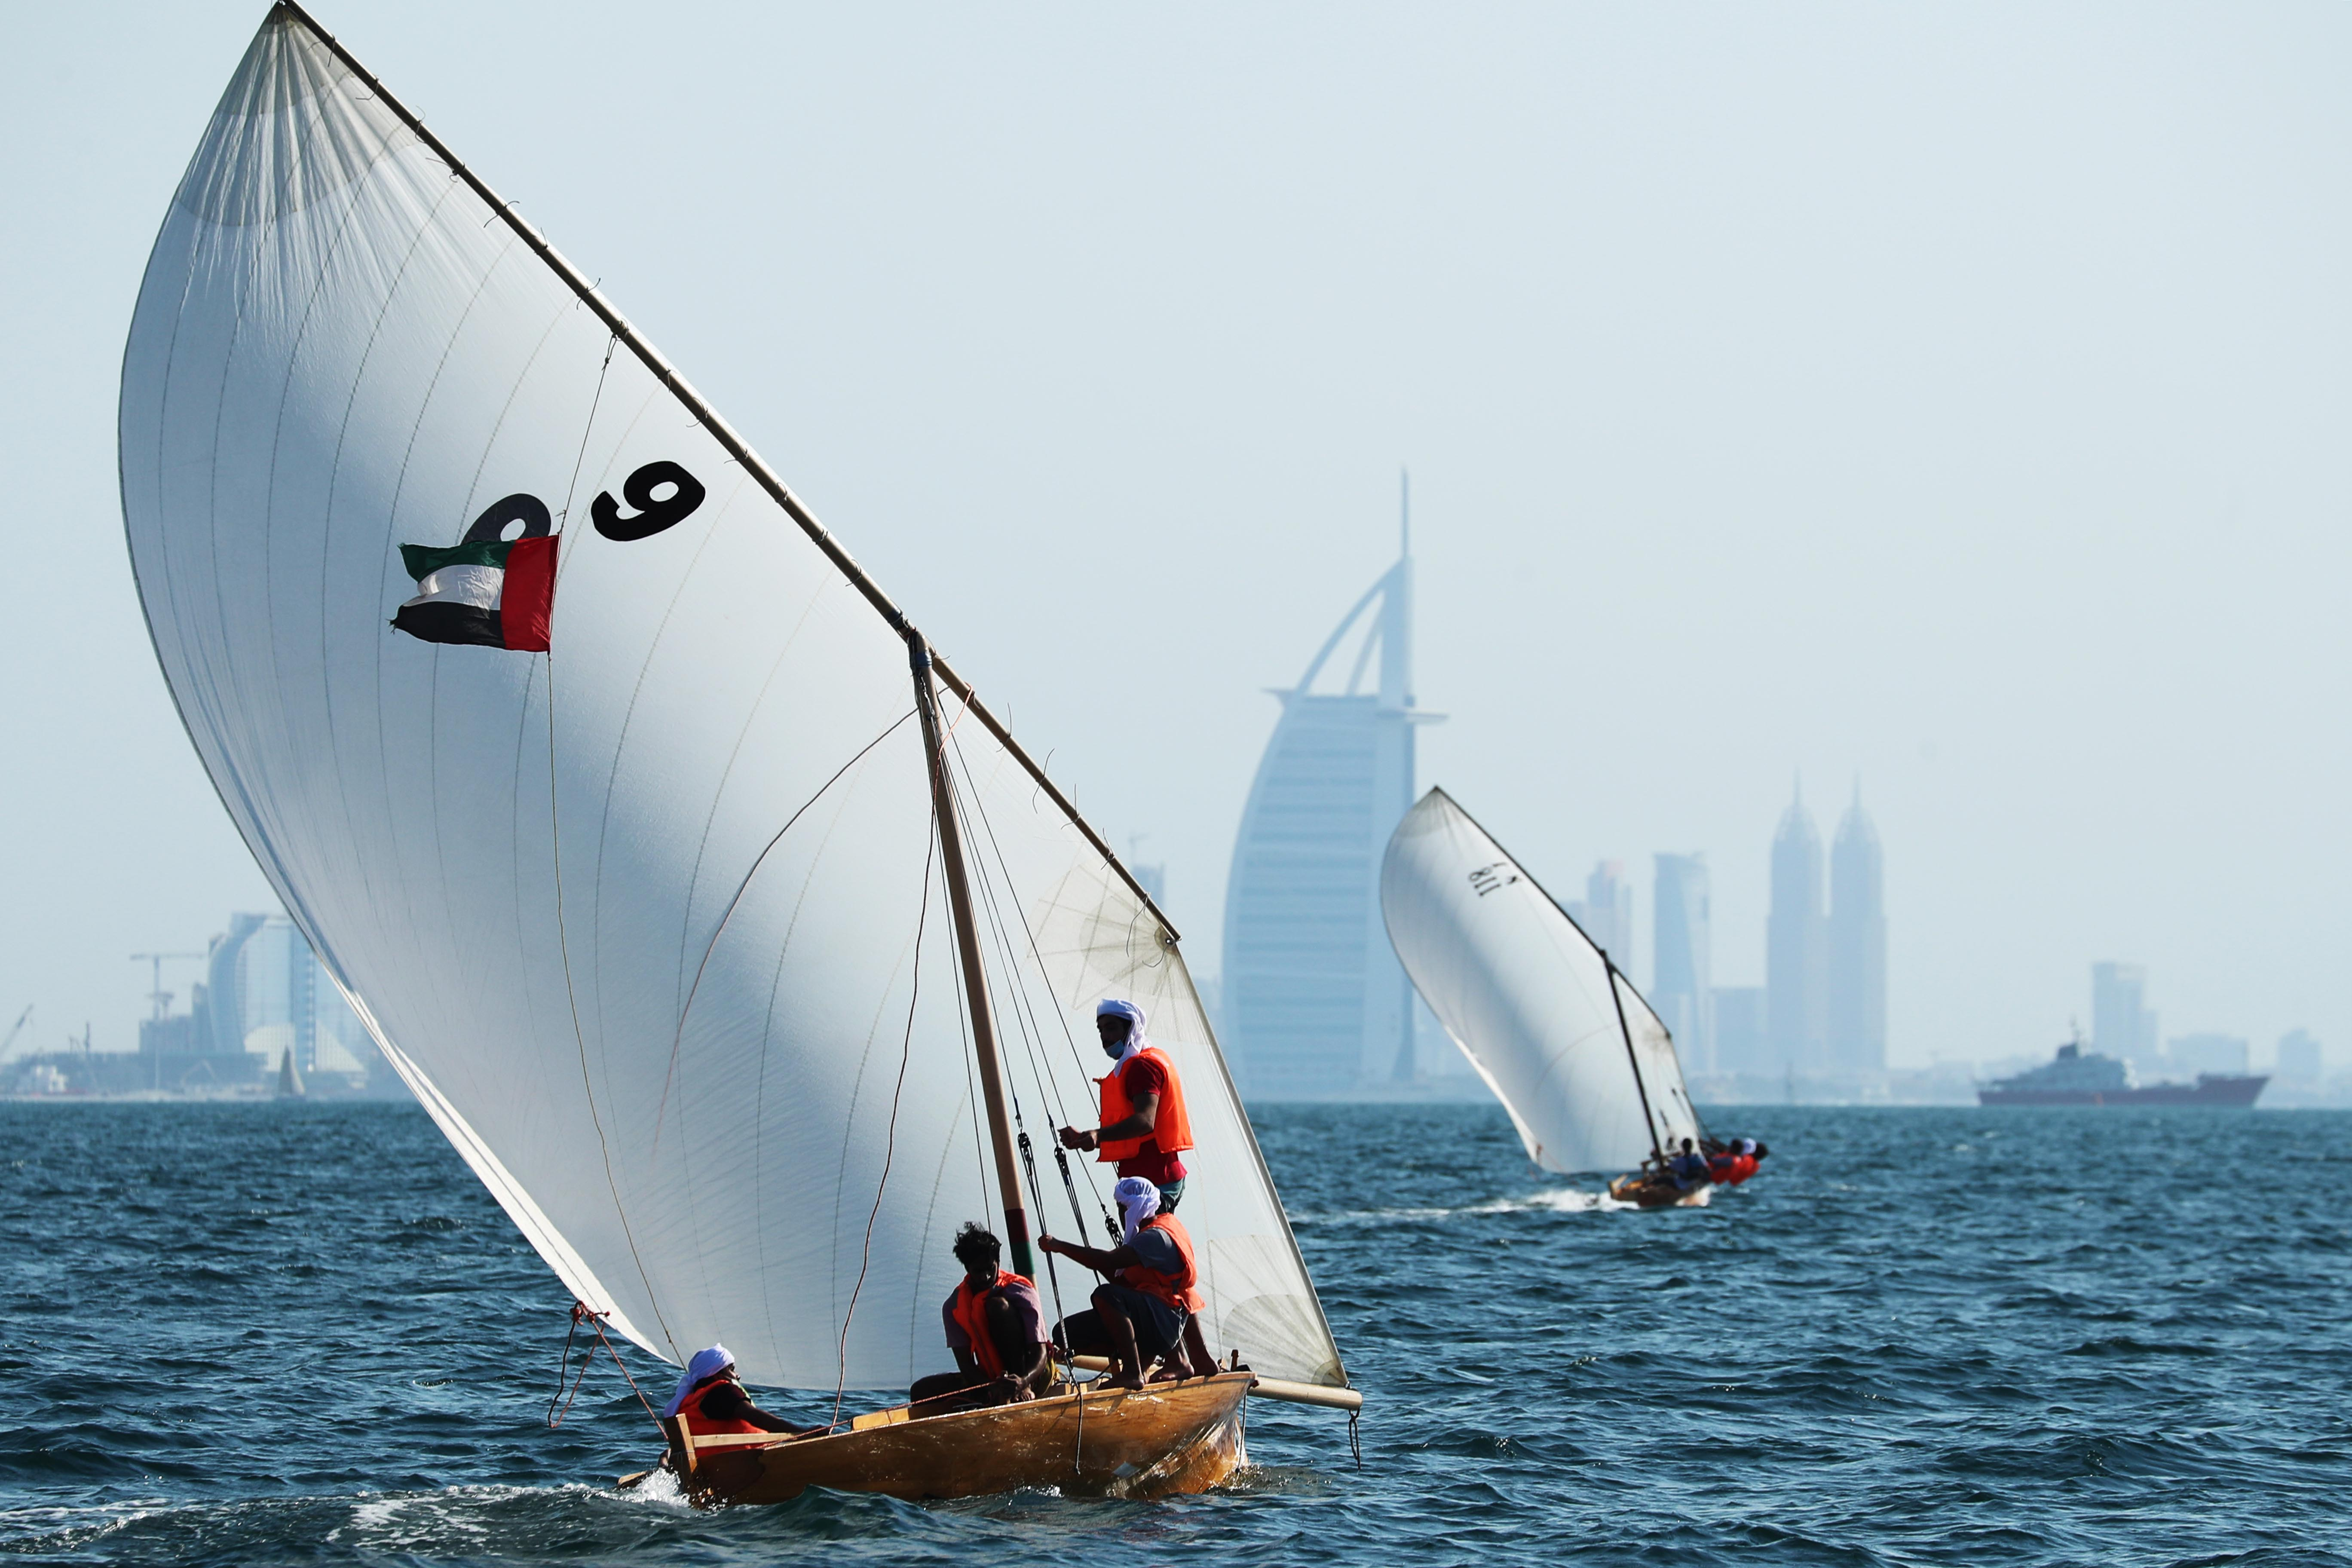 22ft Dhow Sailing Race in Jumeirah on Thursday